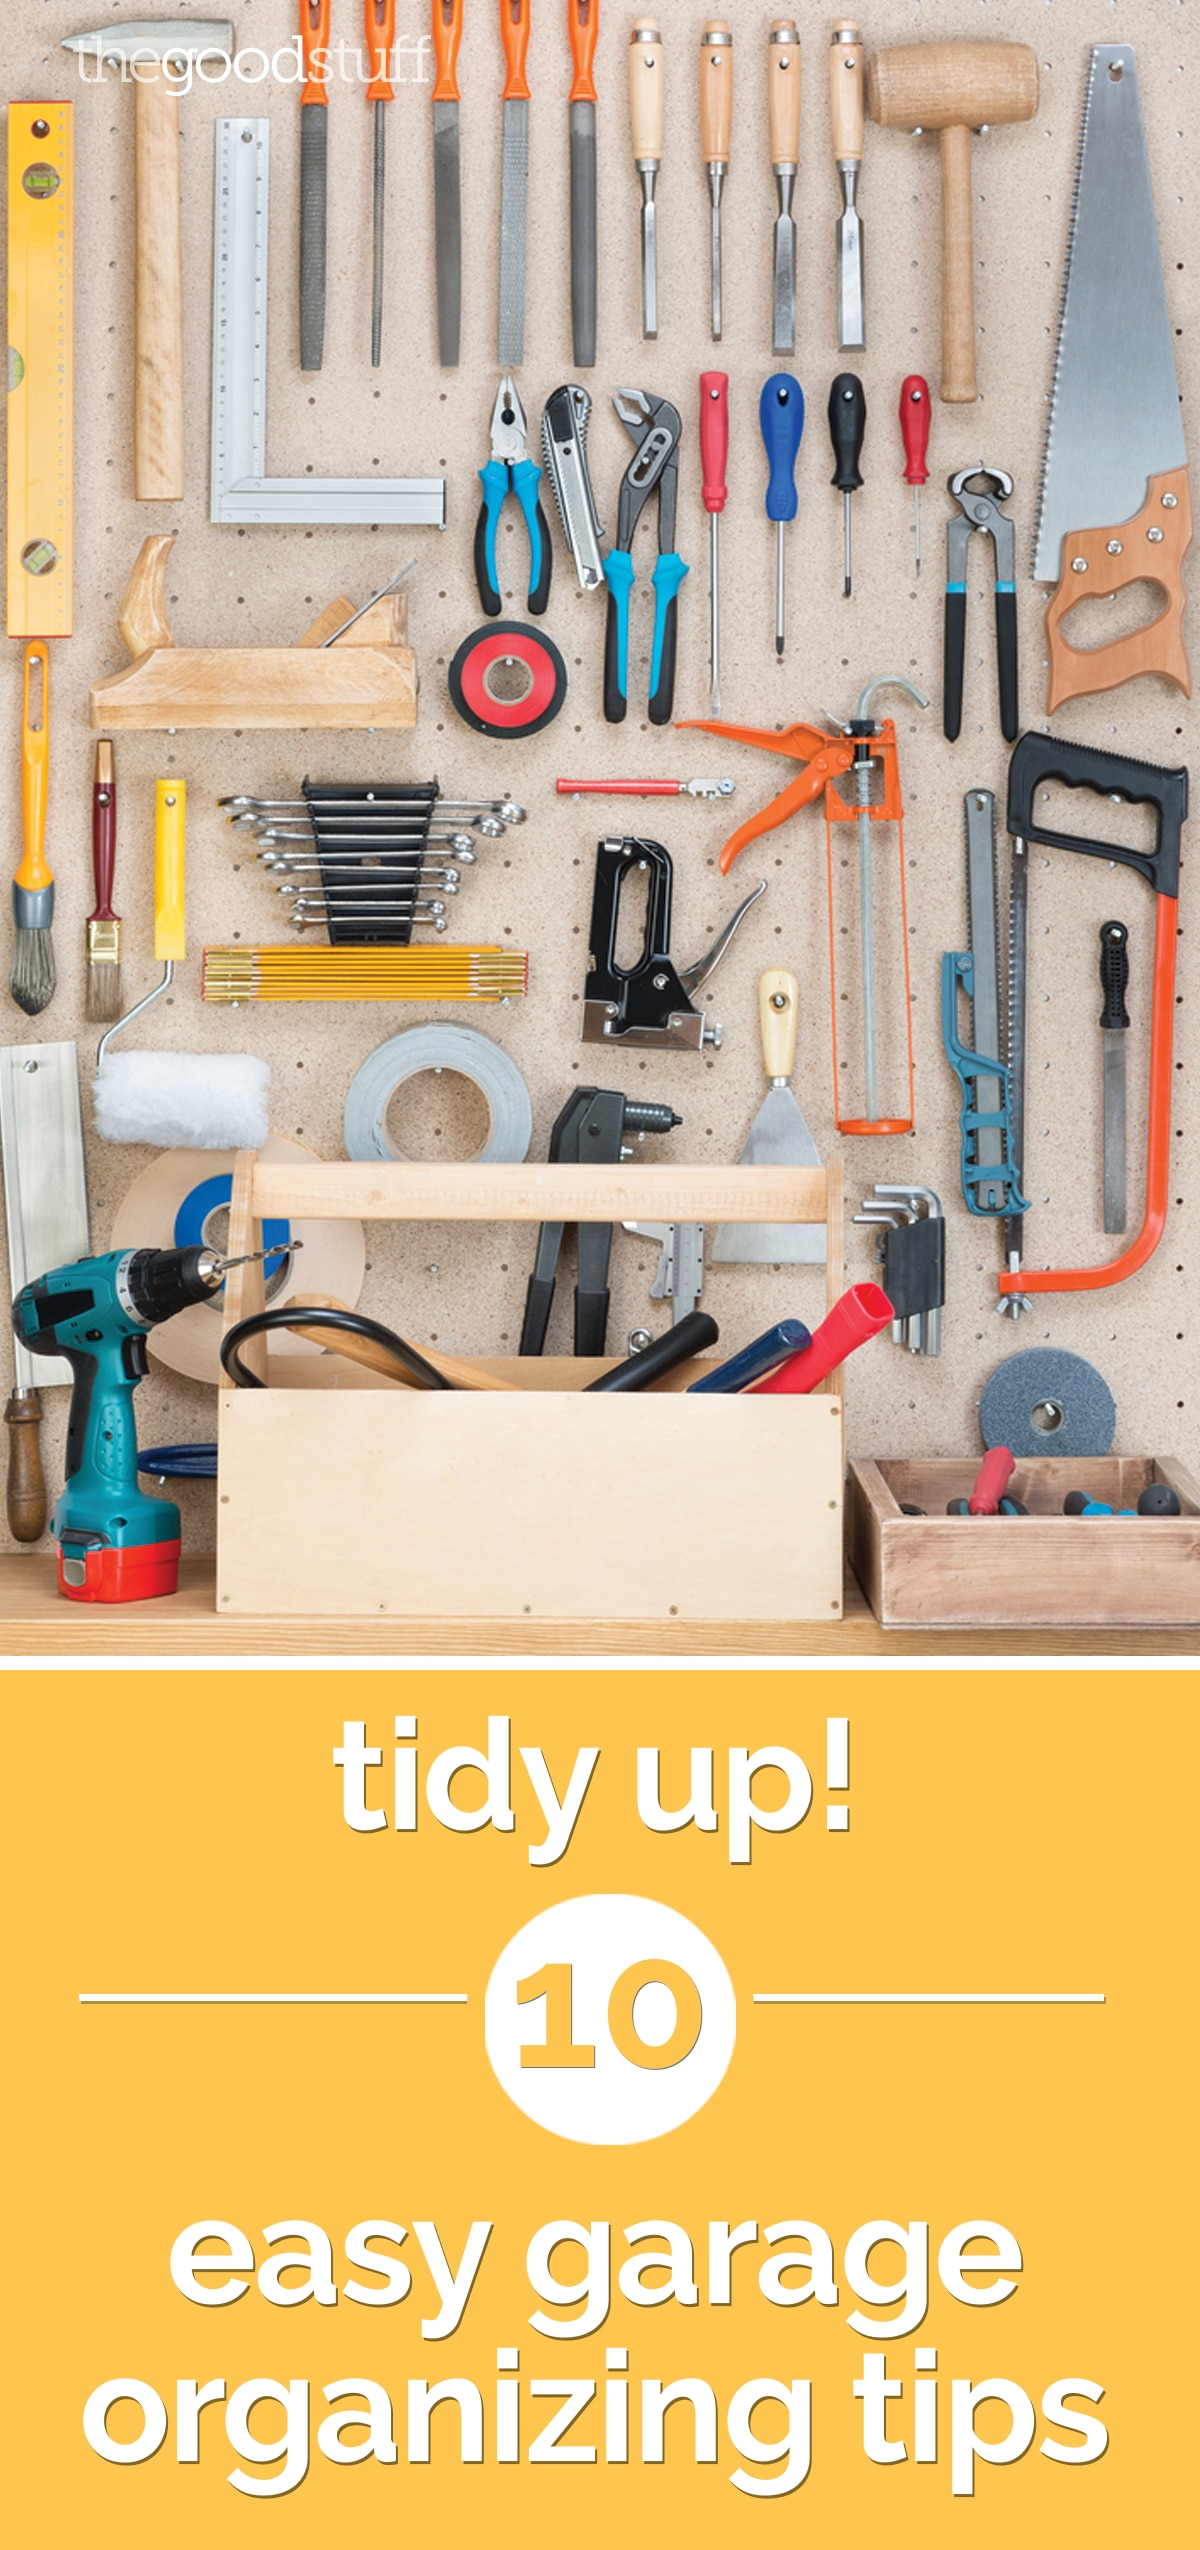 Tidy Up! 5 Easy Garage Organizing Tips | thegoodstuff